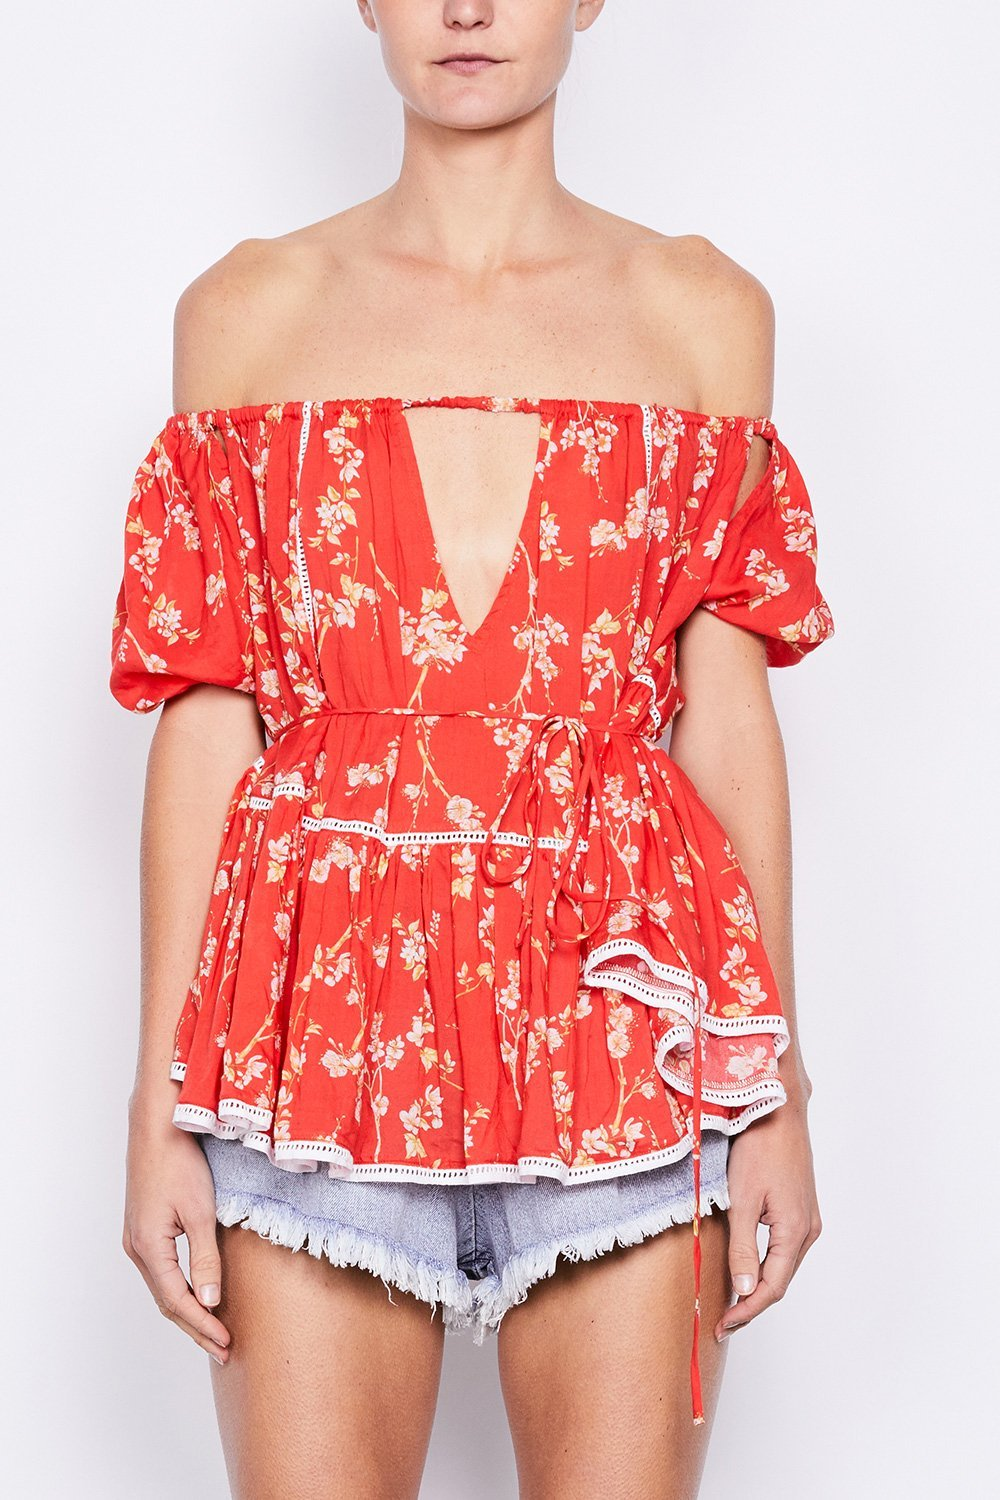 MLM Noah Off The Shoulder Baby Doll Top in Red Floral - Lookbook Boutique